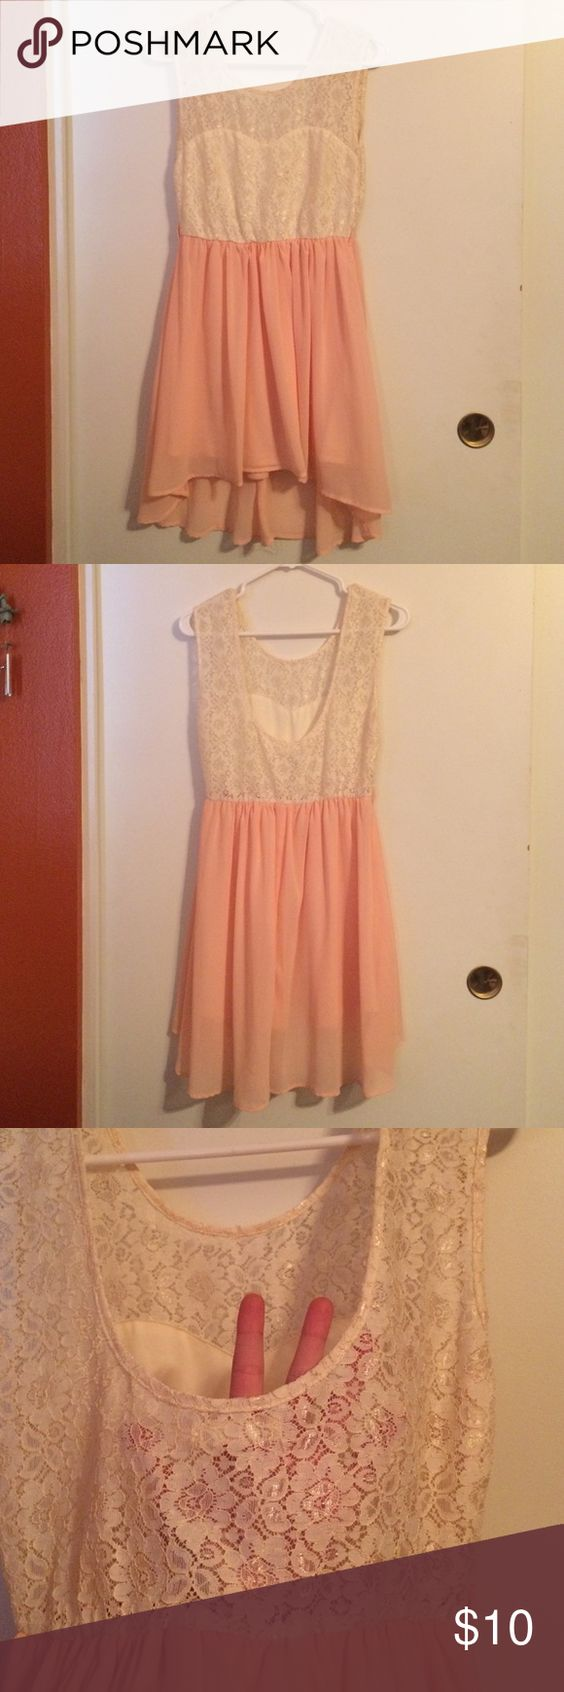 Pink see through lace dress  Cream Lace Top  Pink Flowy Bottom Dress